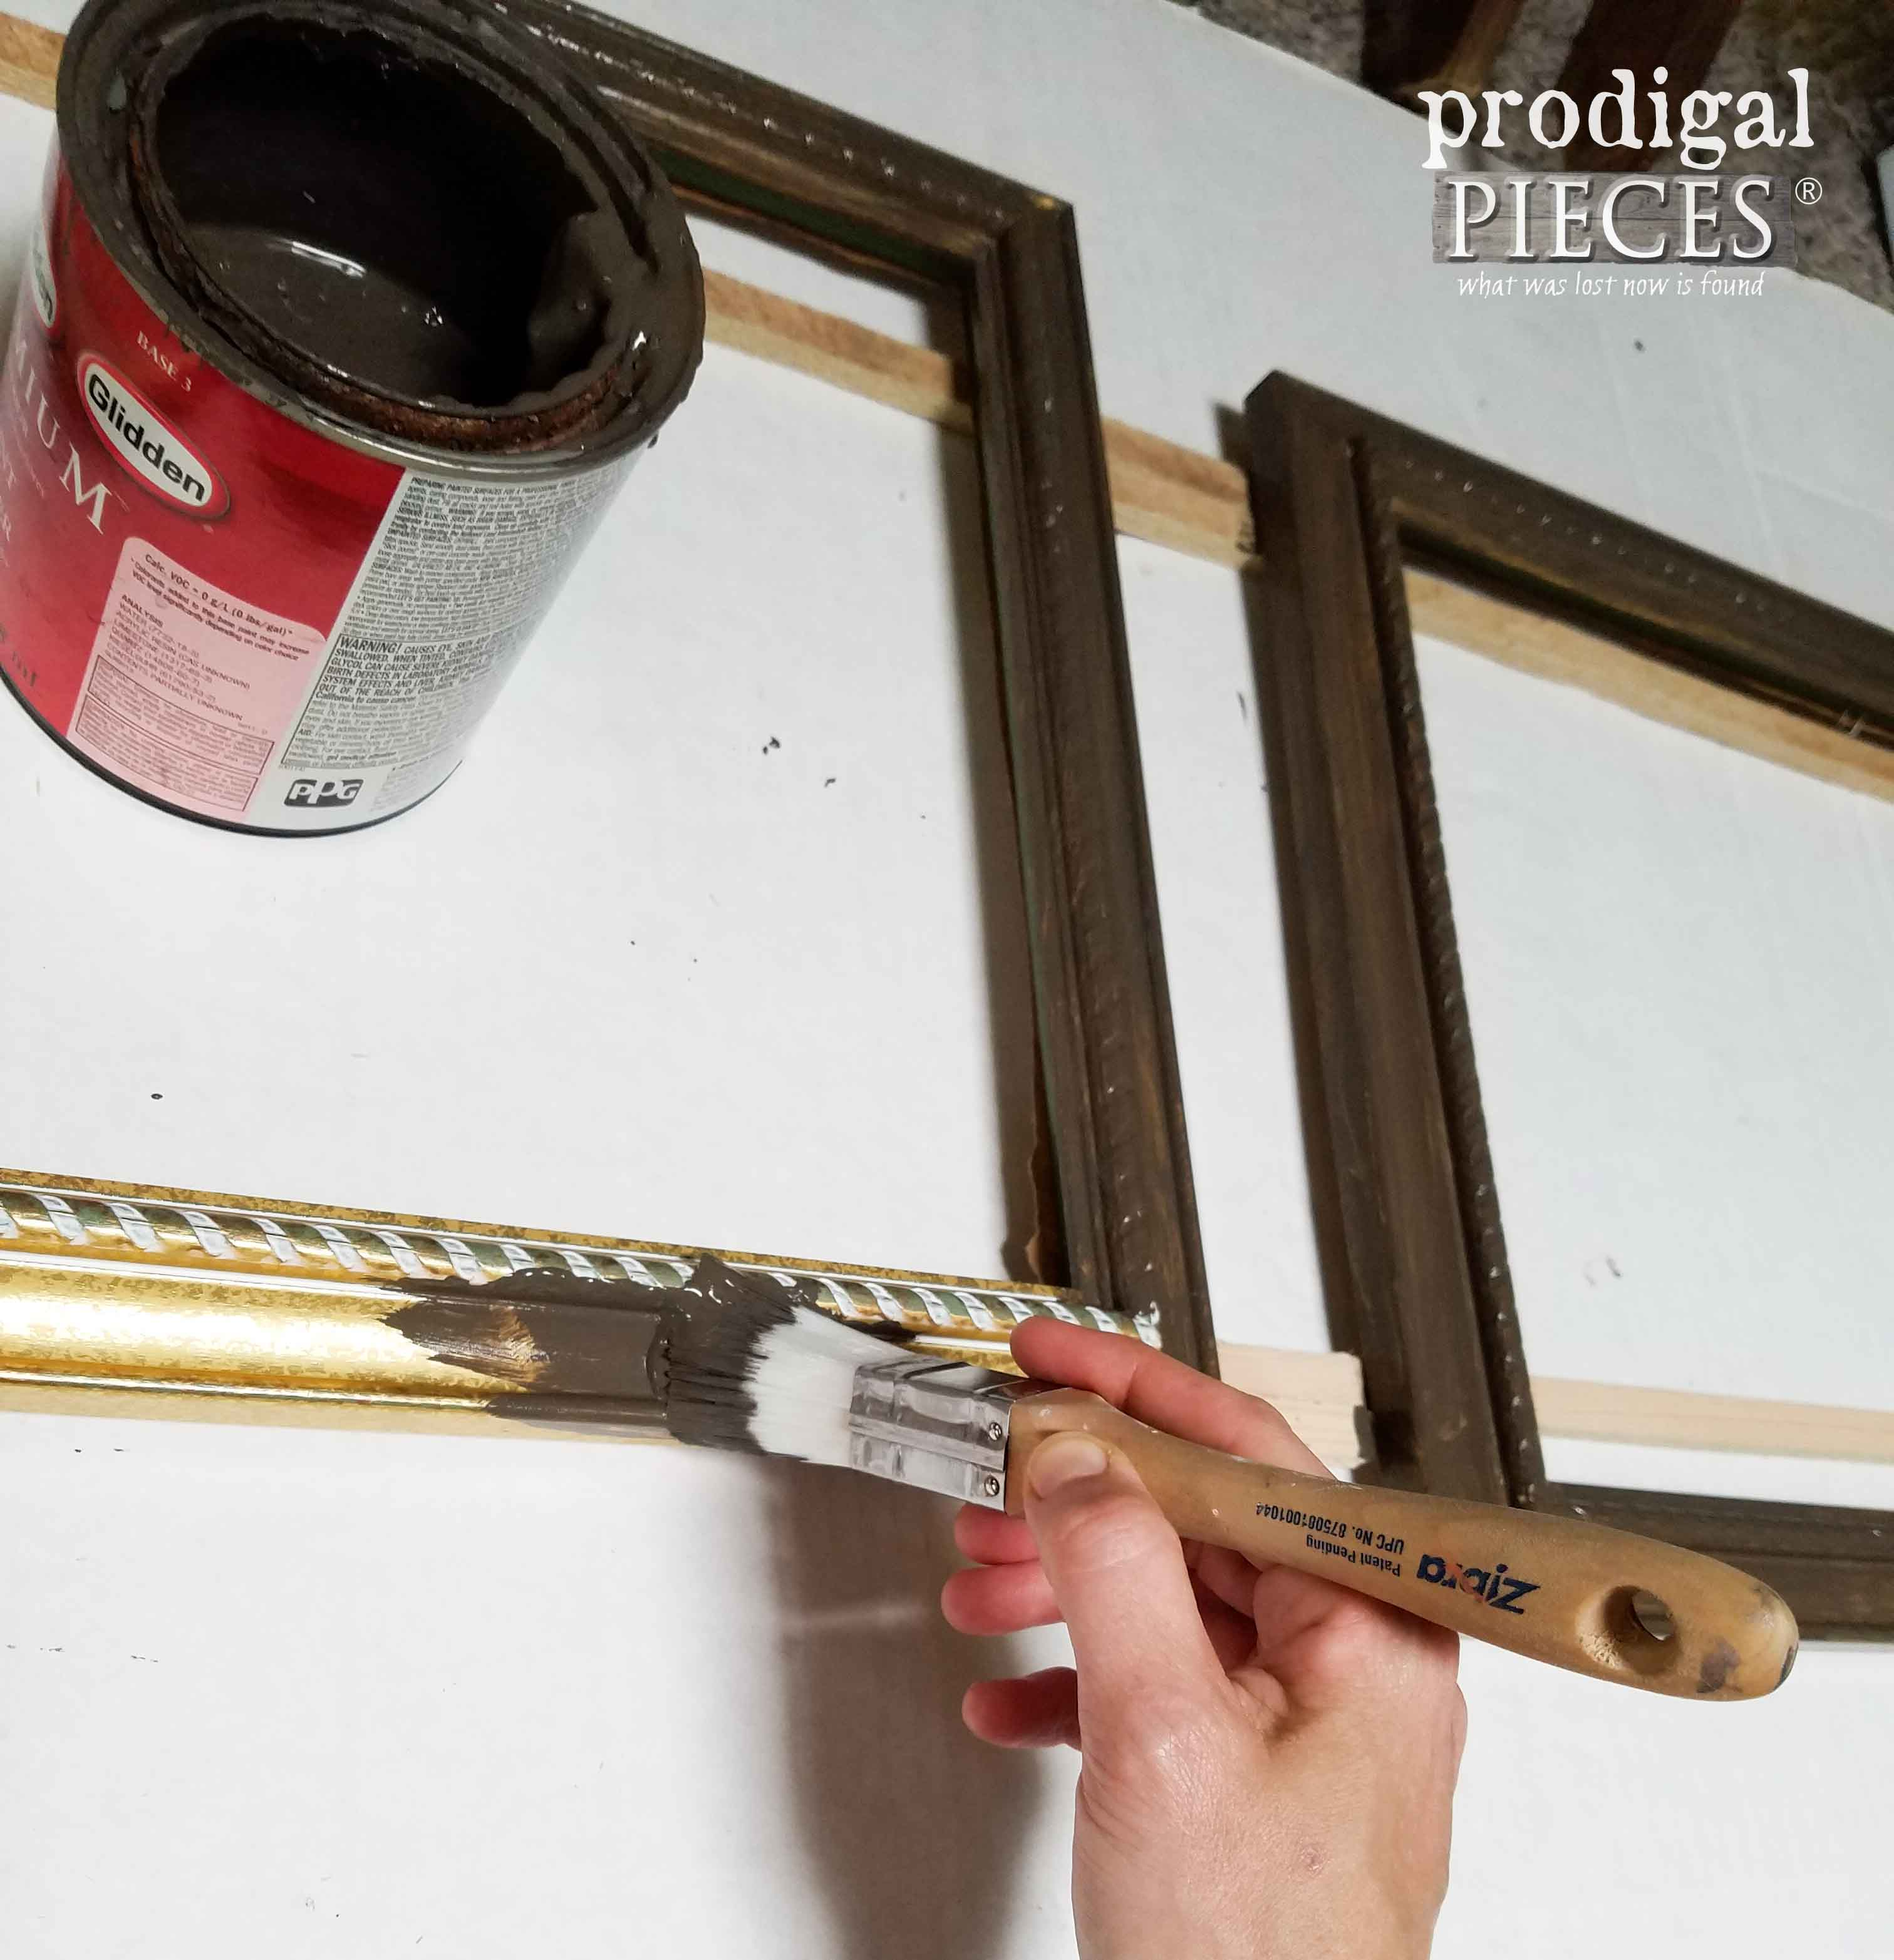 Painting Frames for Doily Art by Prodigal Pieces | prodigalpieces.com